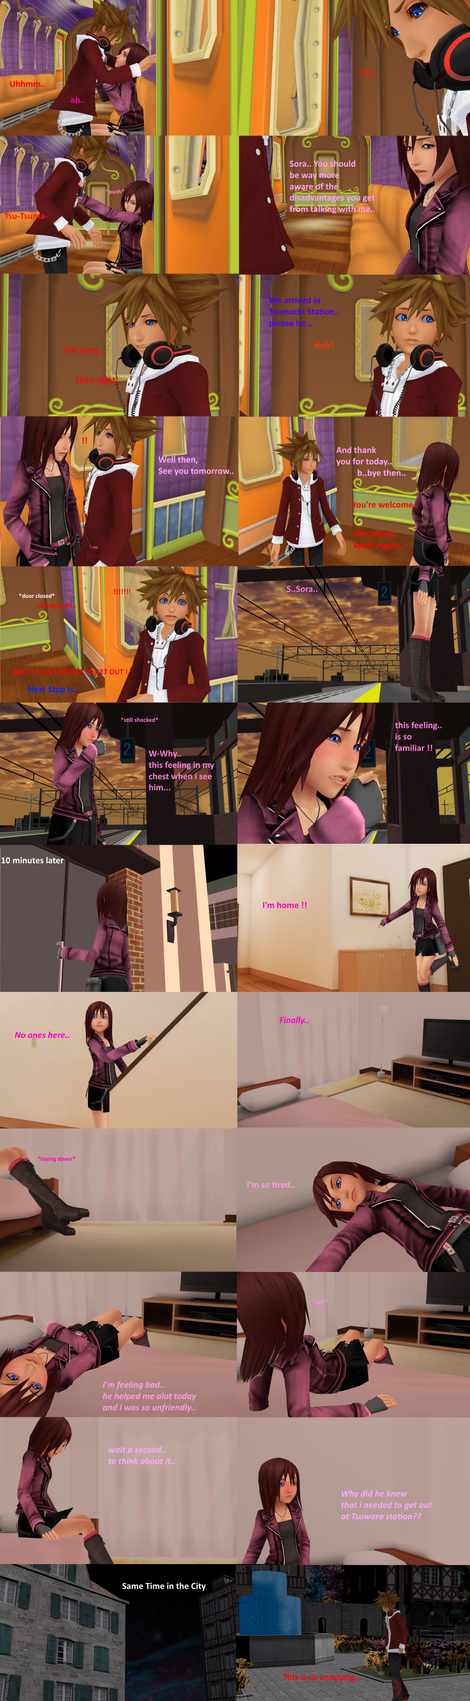 [MMD COMIC] The day we've met [ Part 20] by MischiiOtaku